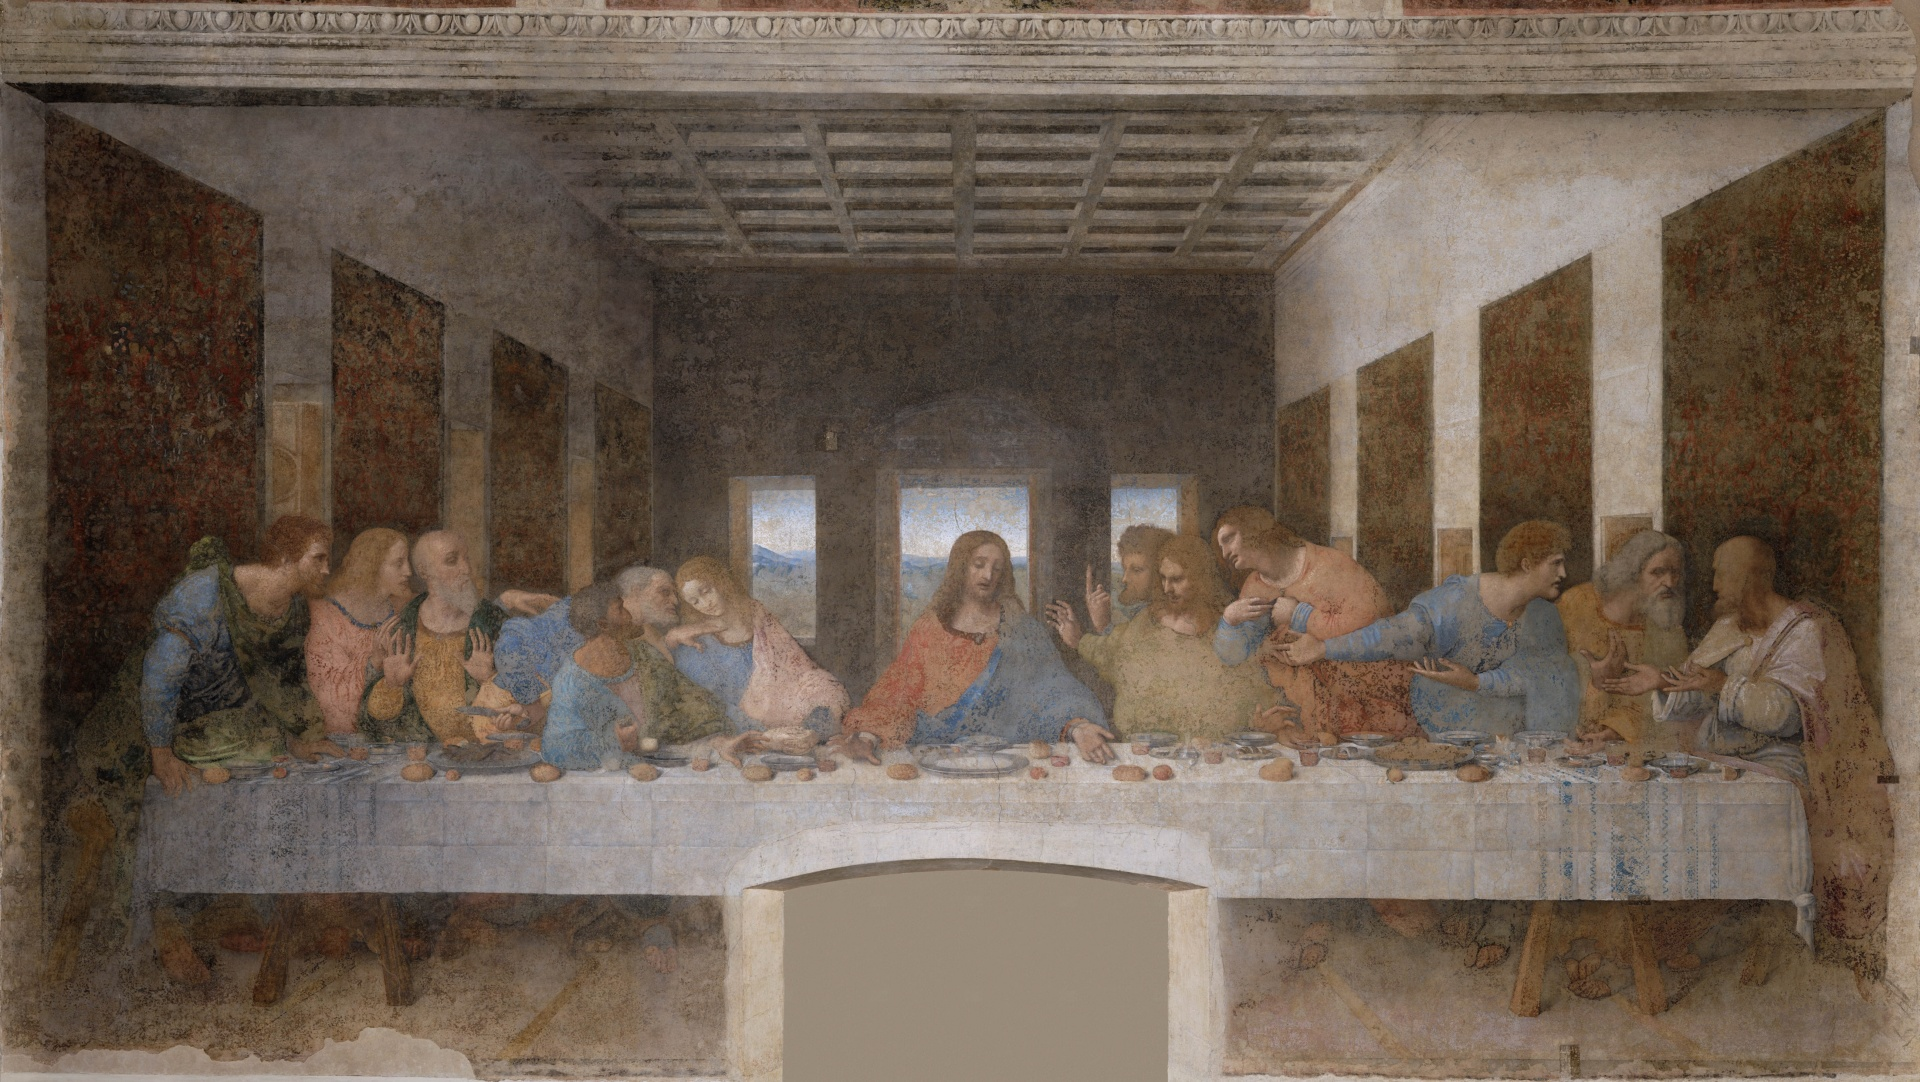 The Last Supper (Leonardo da Vinci)